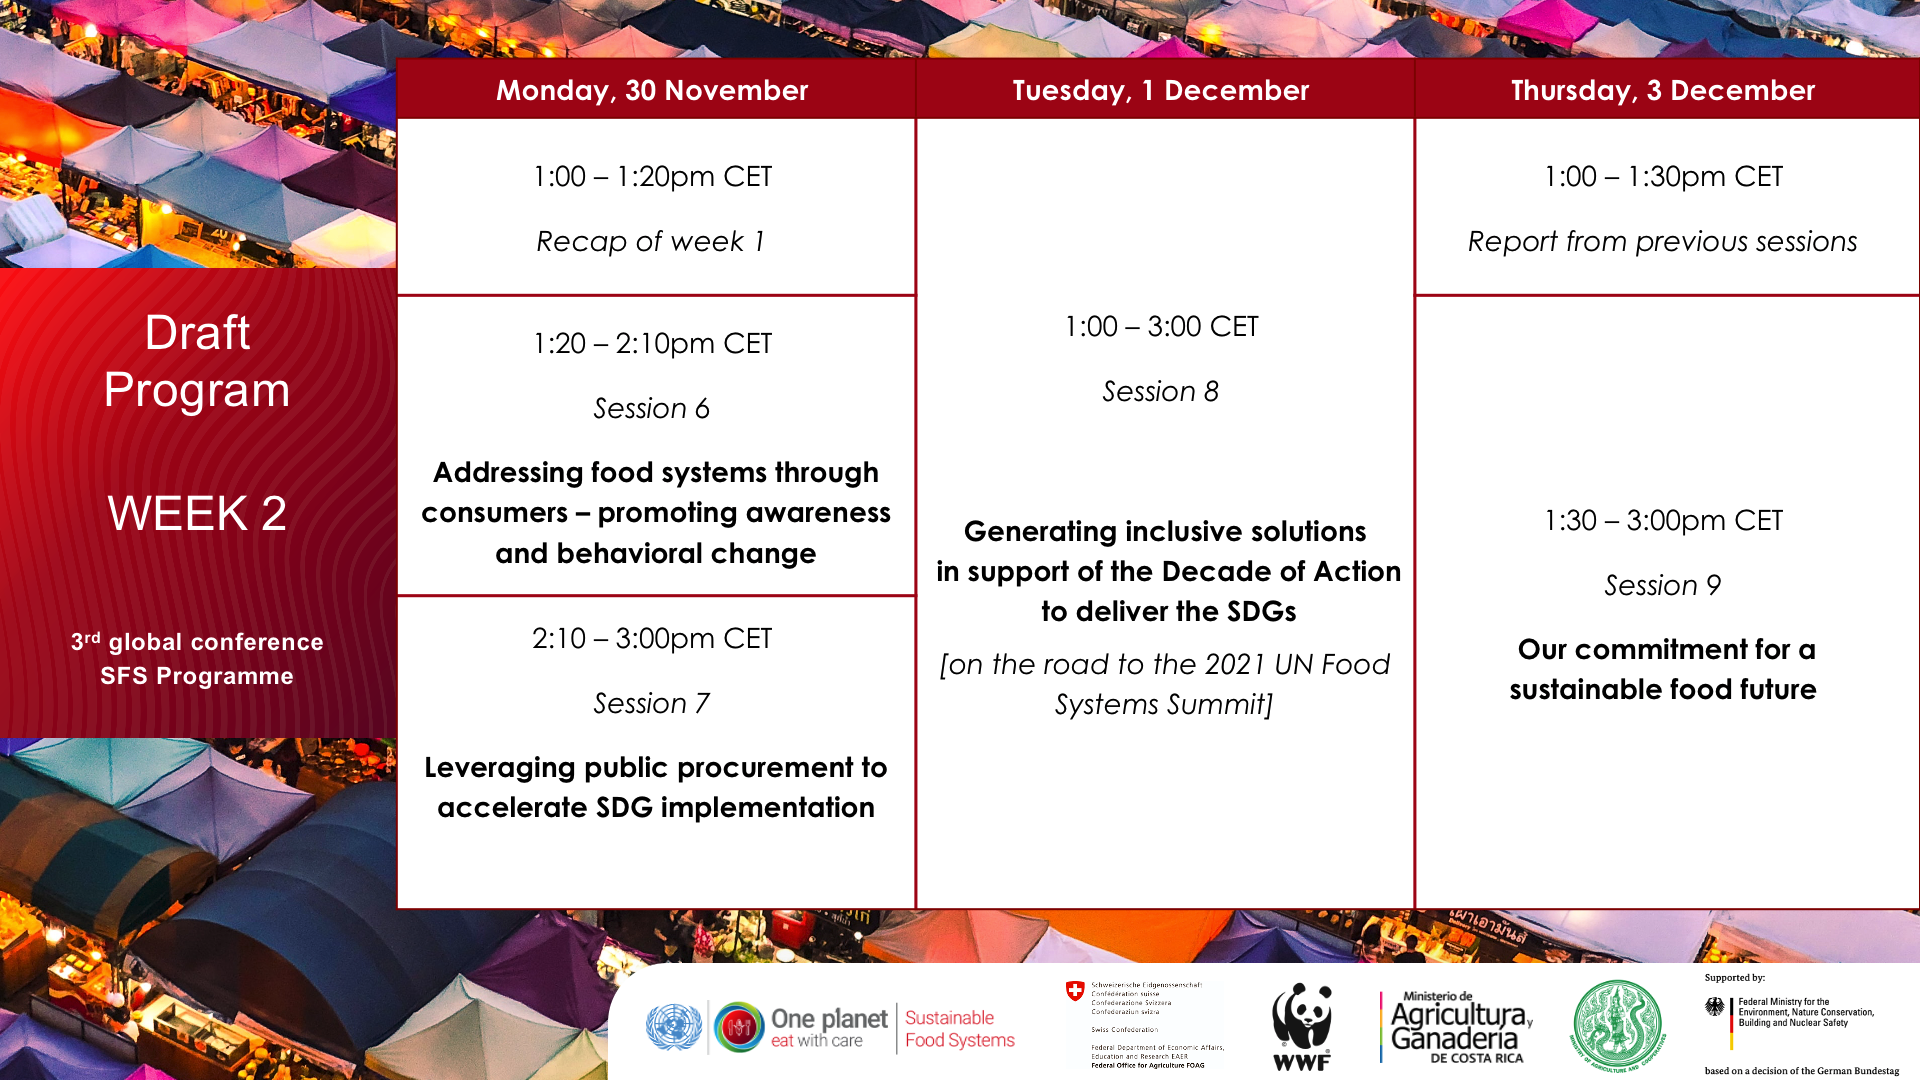 Draft Agenda 3rd global conference sustainable food systems programme UN